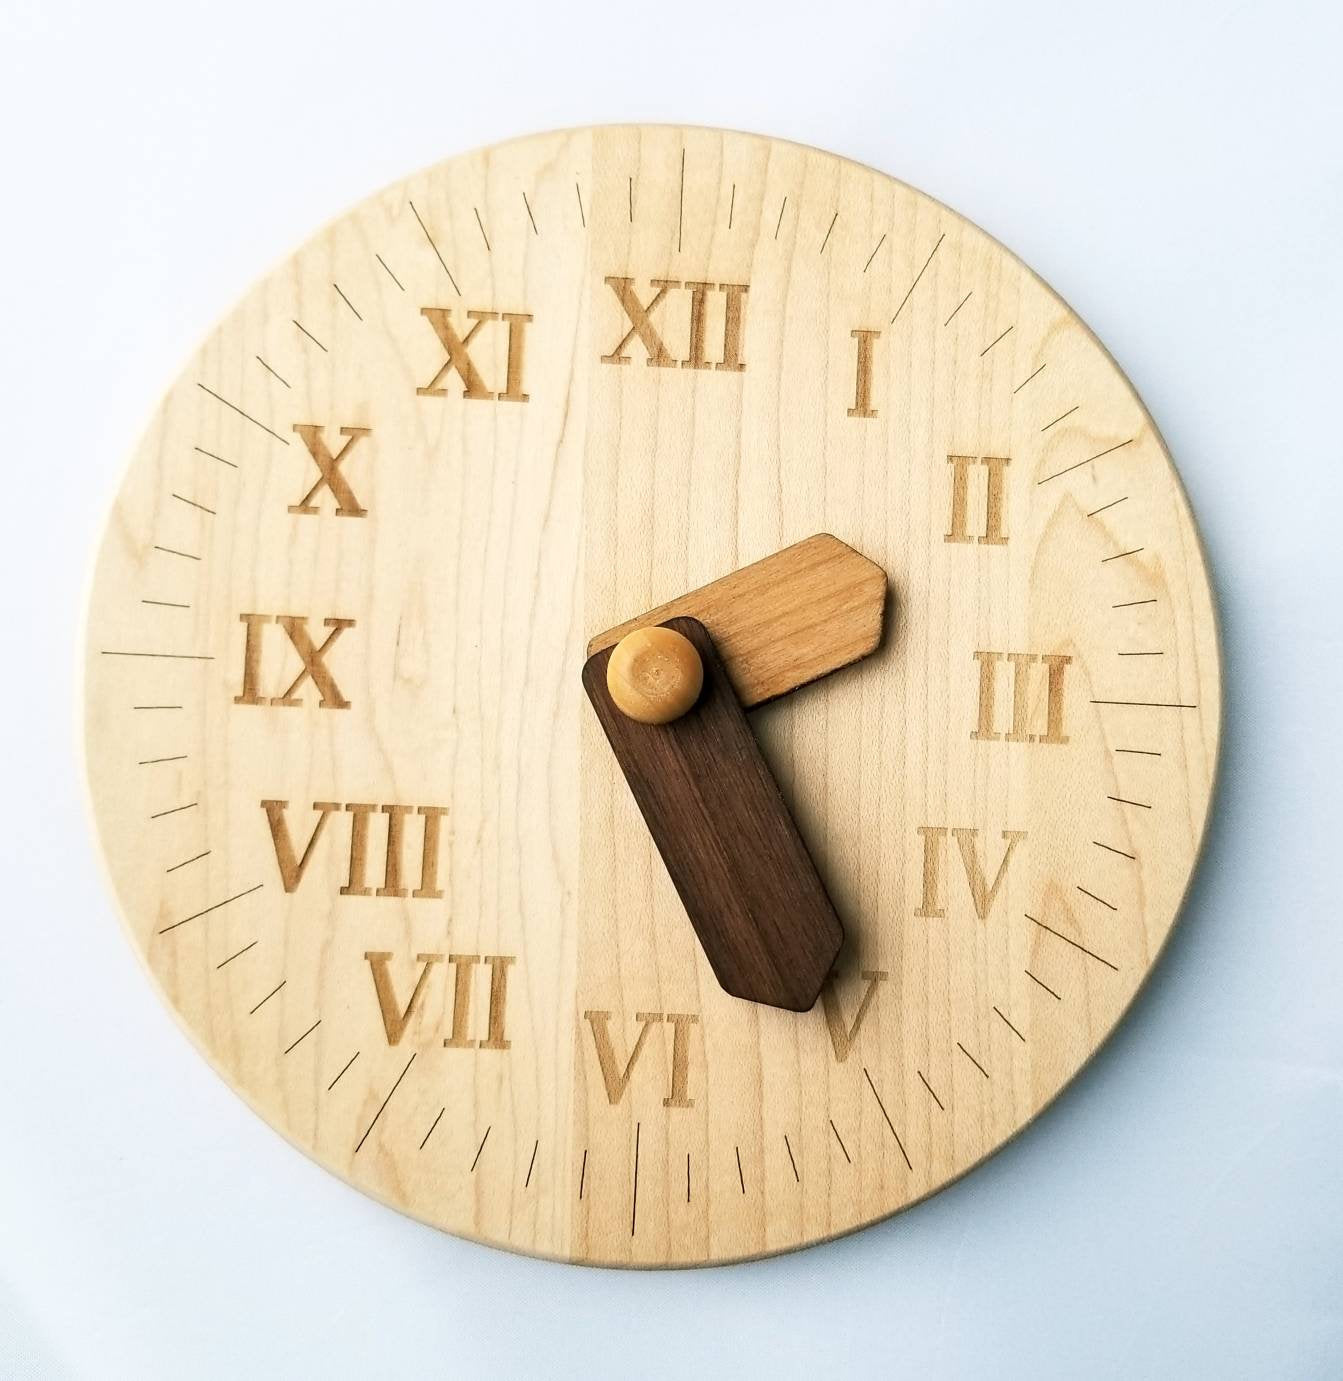 Wooden toy clock with Roman numerals - Learning time - gift for kids